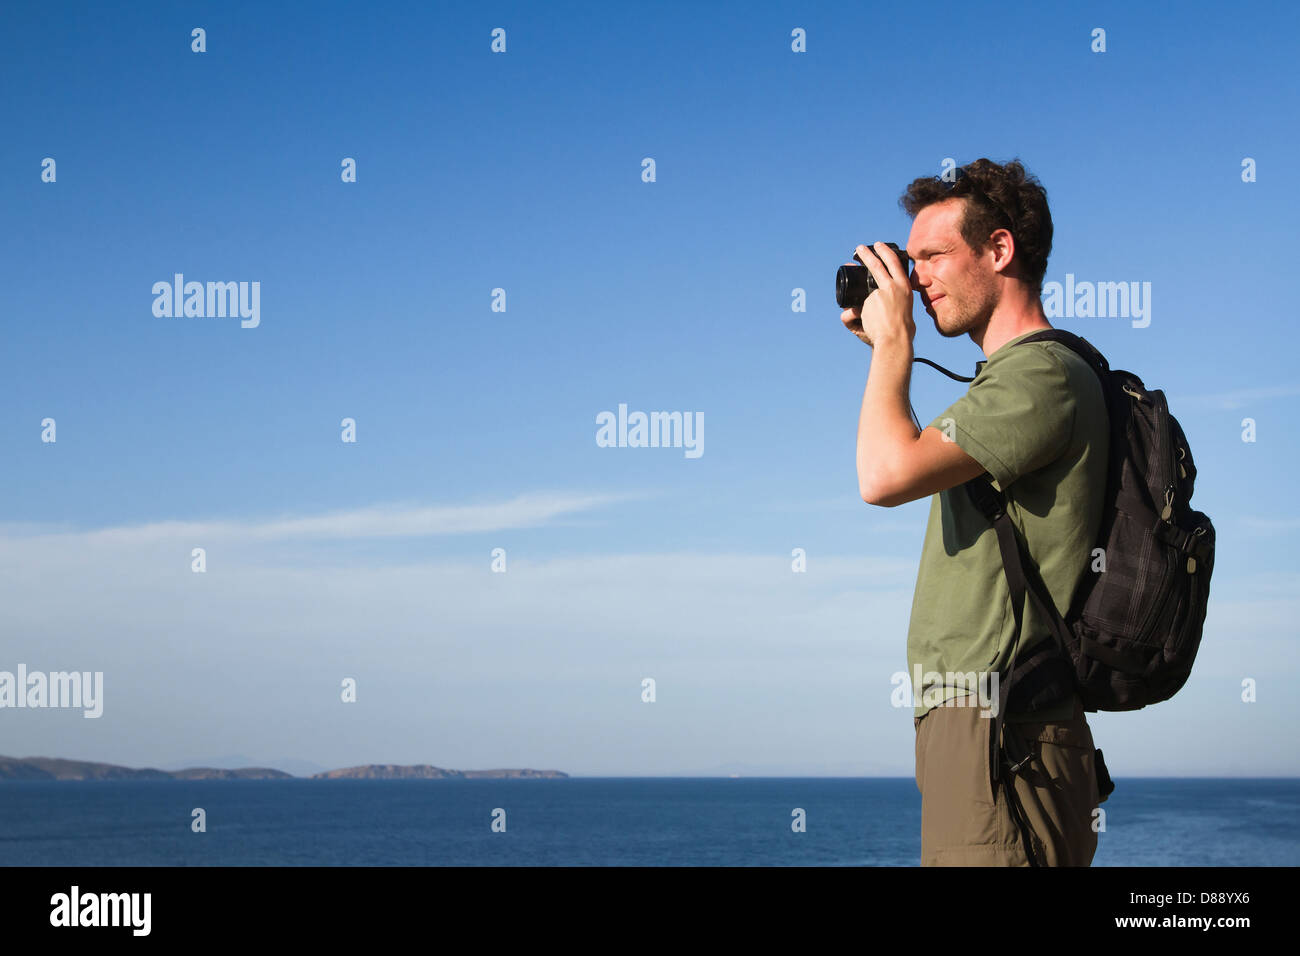 photographer and traveler with the backpack taking pictures outdoors - Stock Image